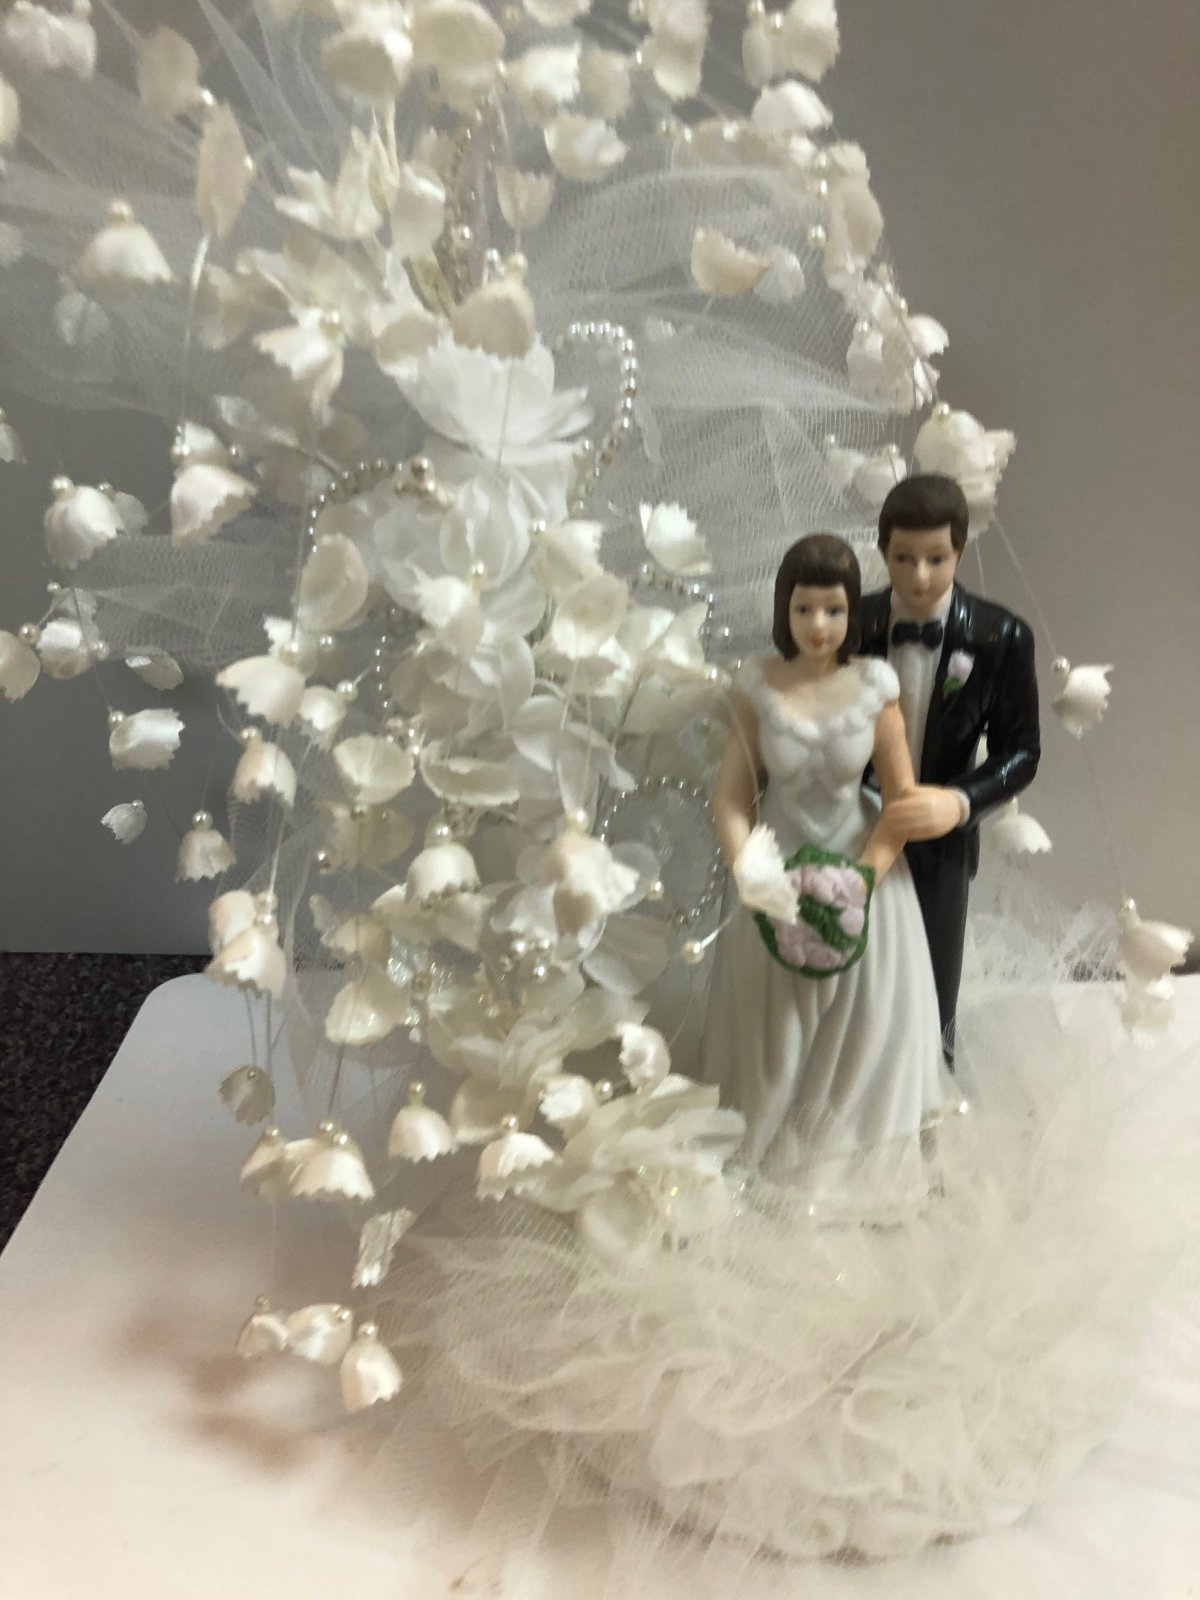 Porcelain Bride & Groom Cake Topper with Cascading Lilly of the Valley